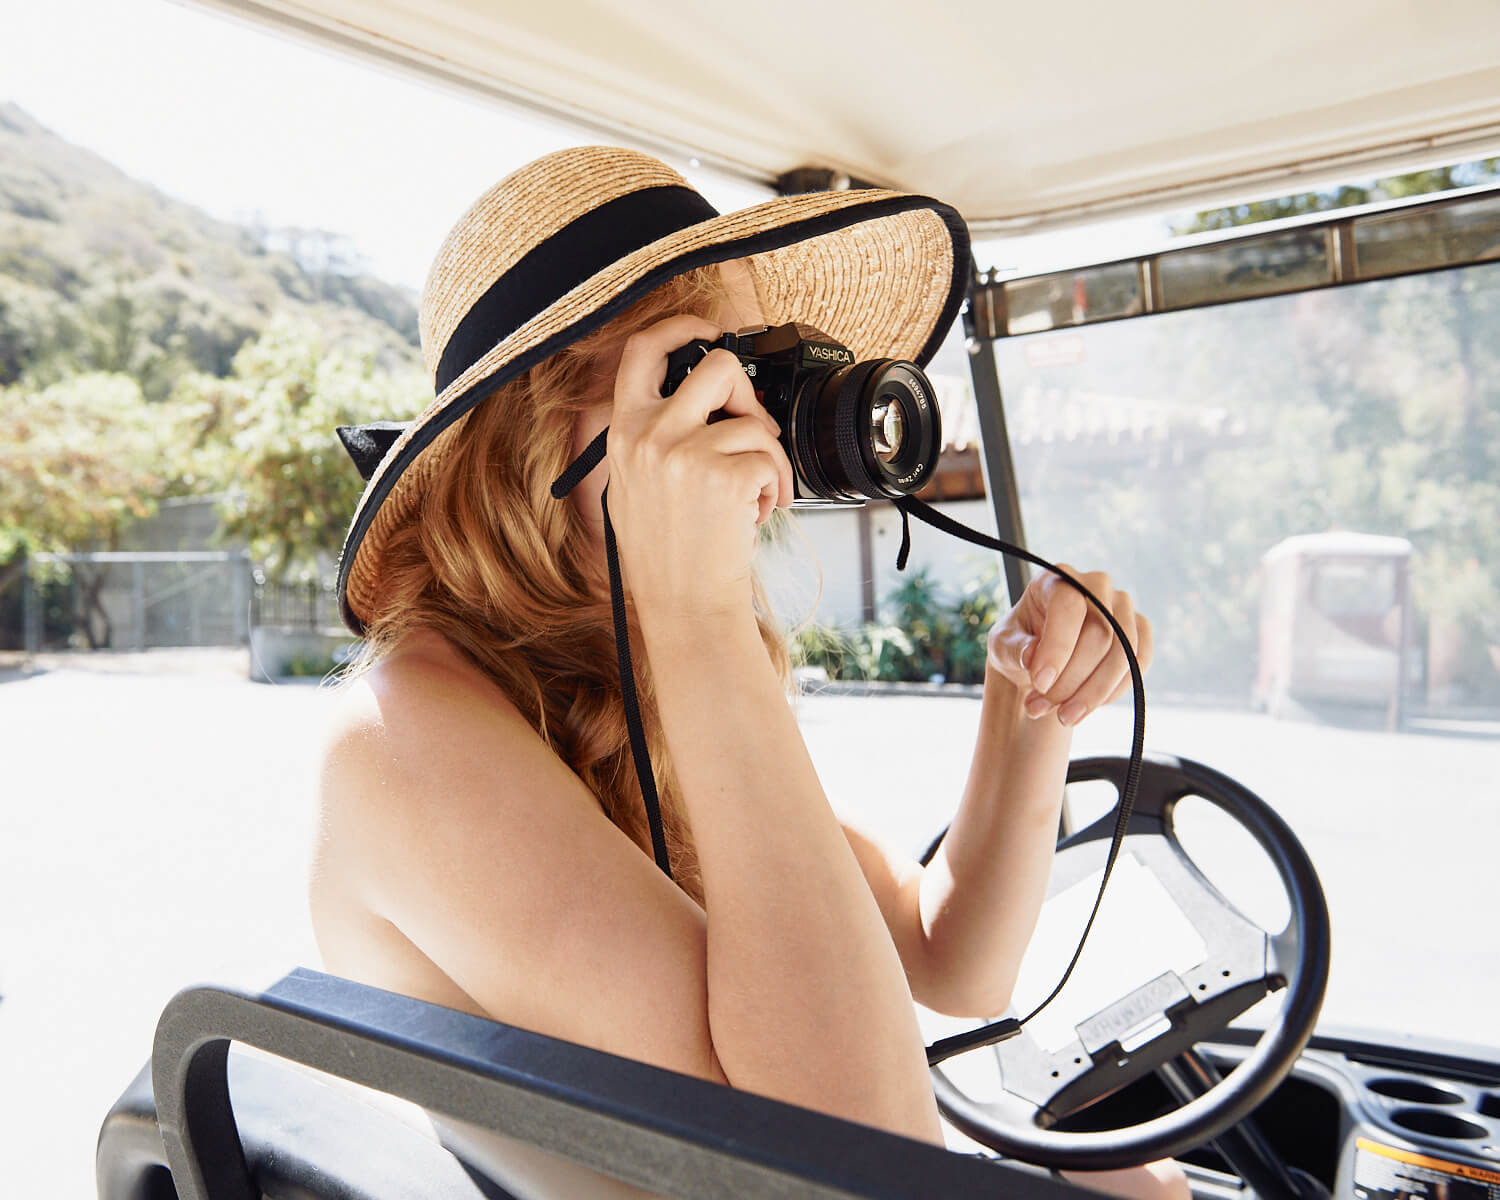 Young woman, in golf cart, by lifestyle photographer Tim Cole